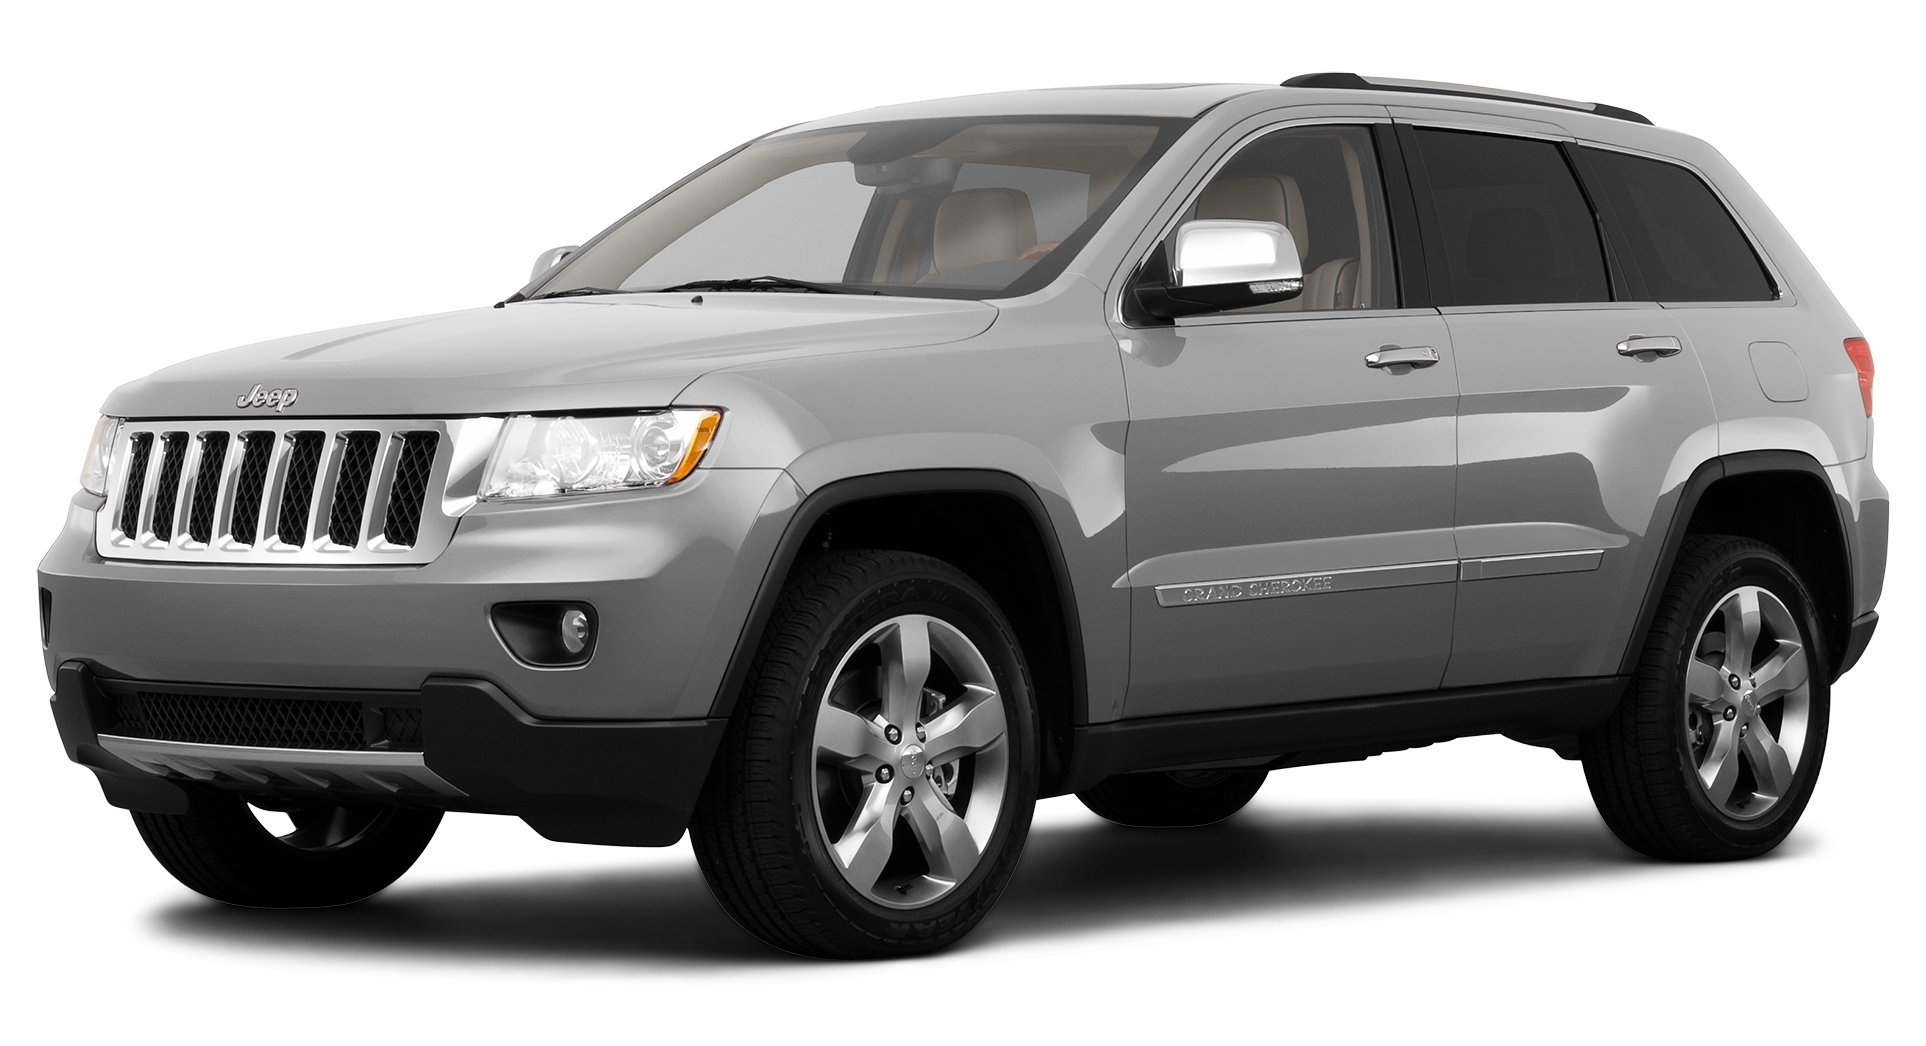 2011 jeep grand cherokee reviews images and specs vehicles. Black Bedroom Furniture Sets. Home Design Ideas